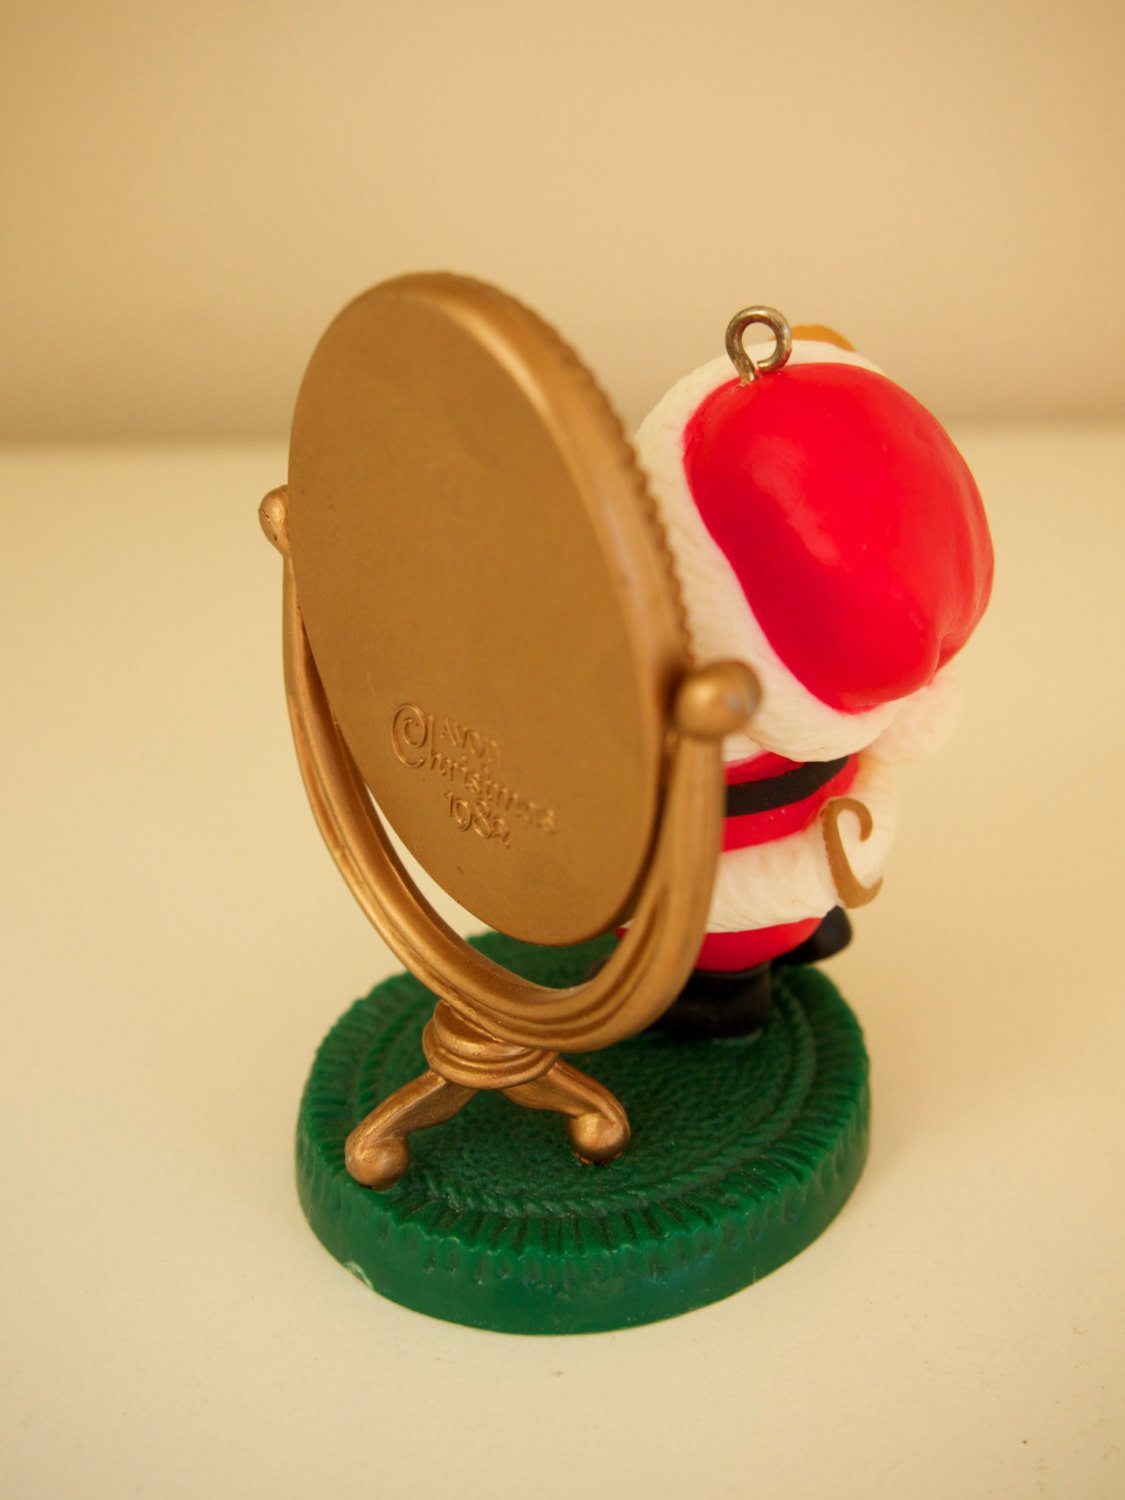 Melvin P. Merrymouse Avon 1982 Keepsake Ornament Santa Mirror Mouse